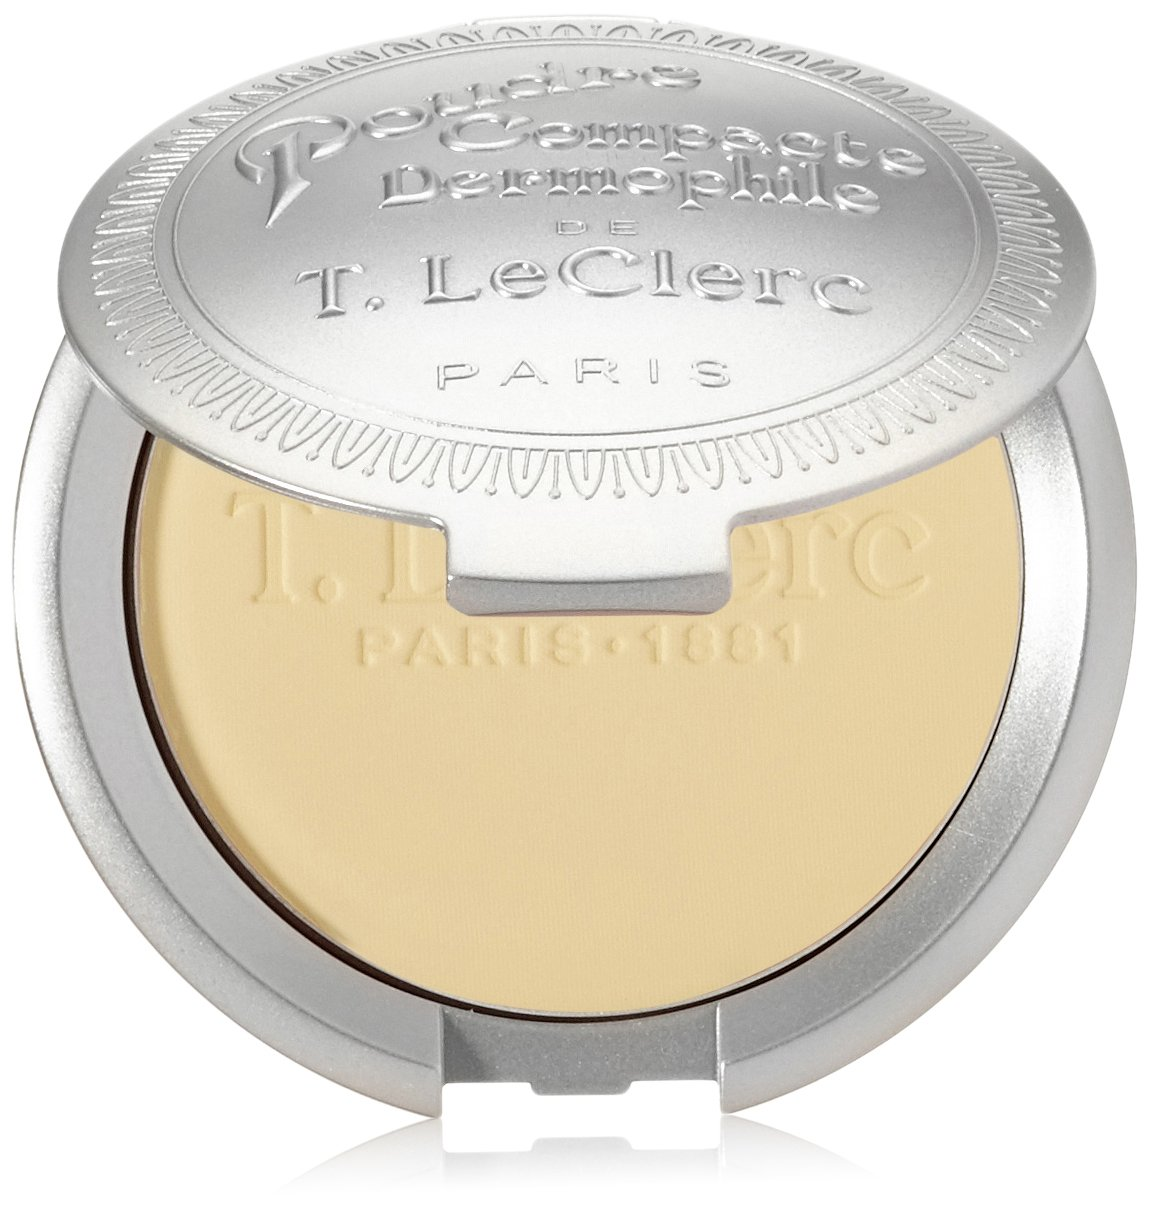 T. LeClerc Pressed Powder - No. 01 Banane - 10g/0.34oz